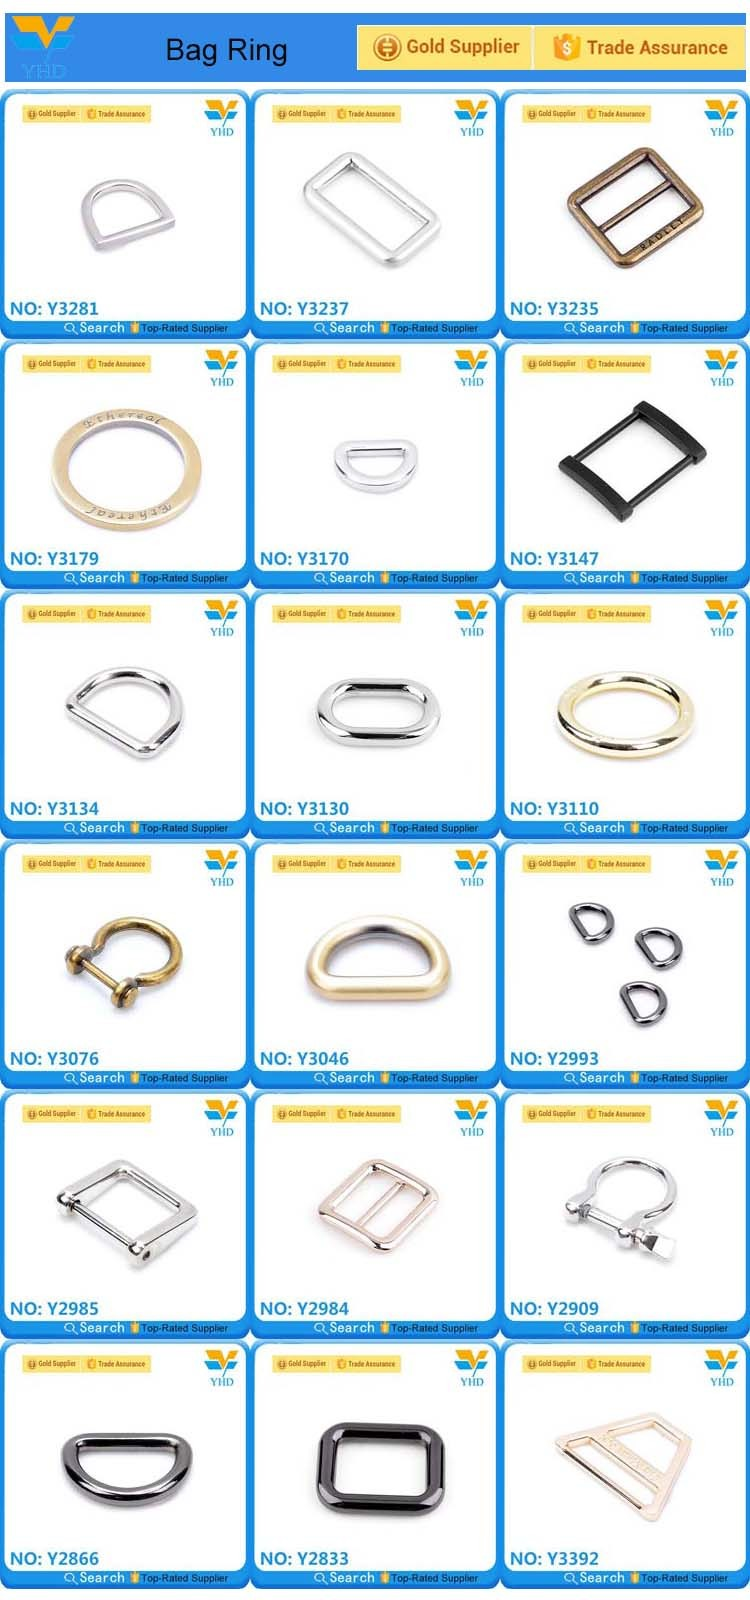 25mm fashion metal bag square buckle